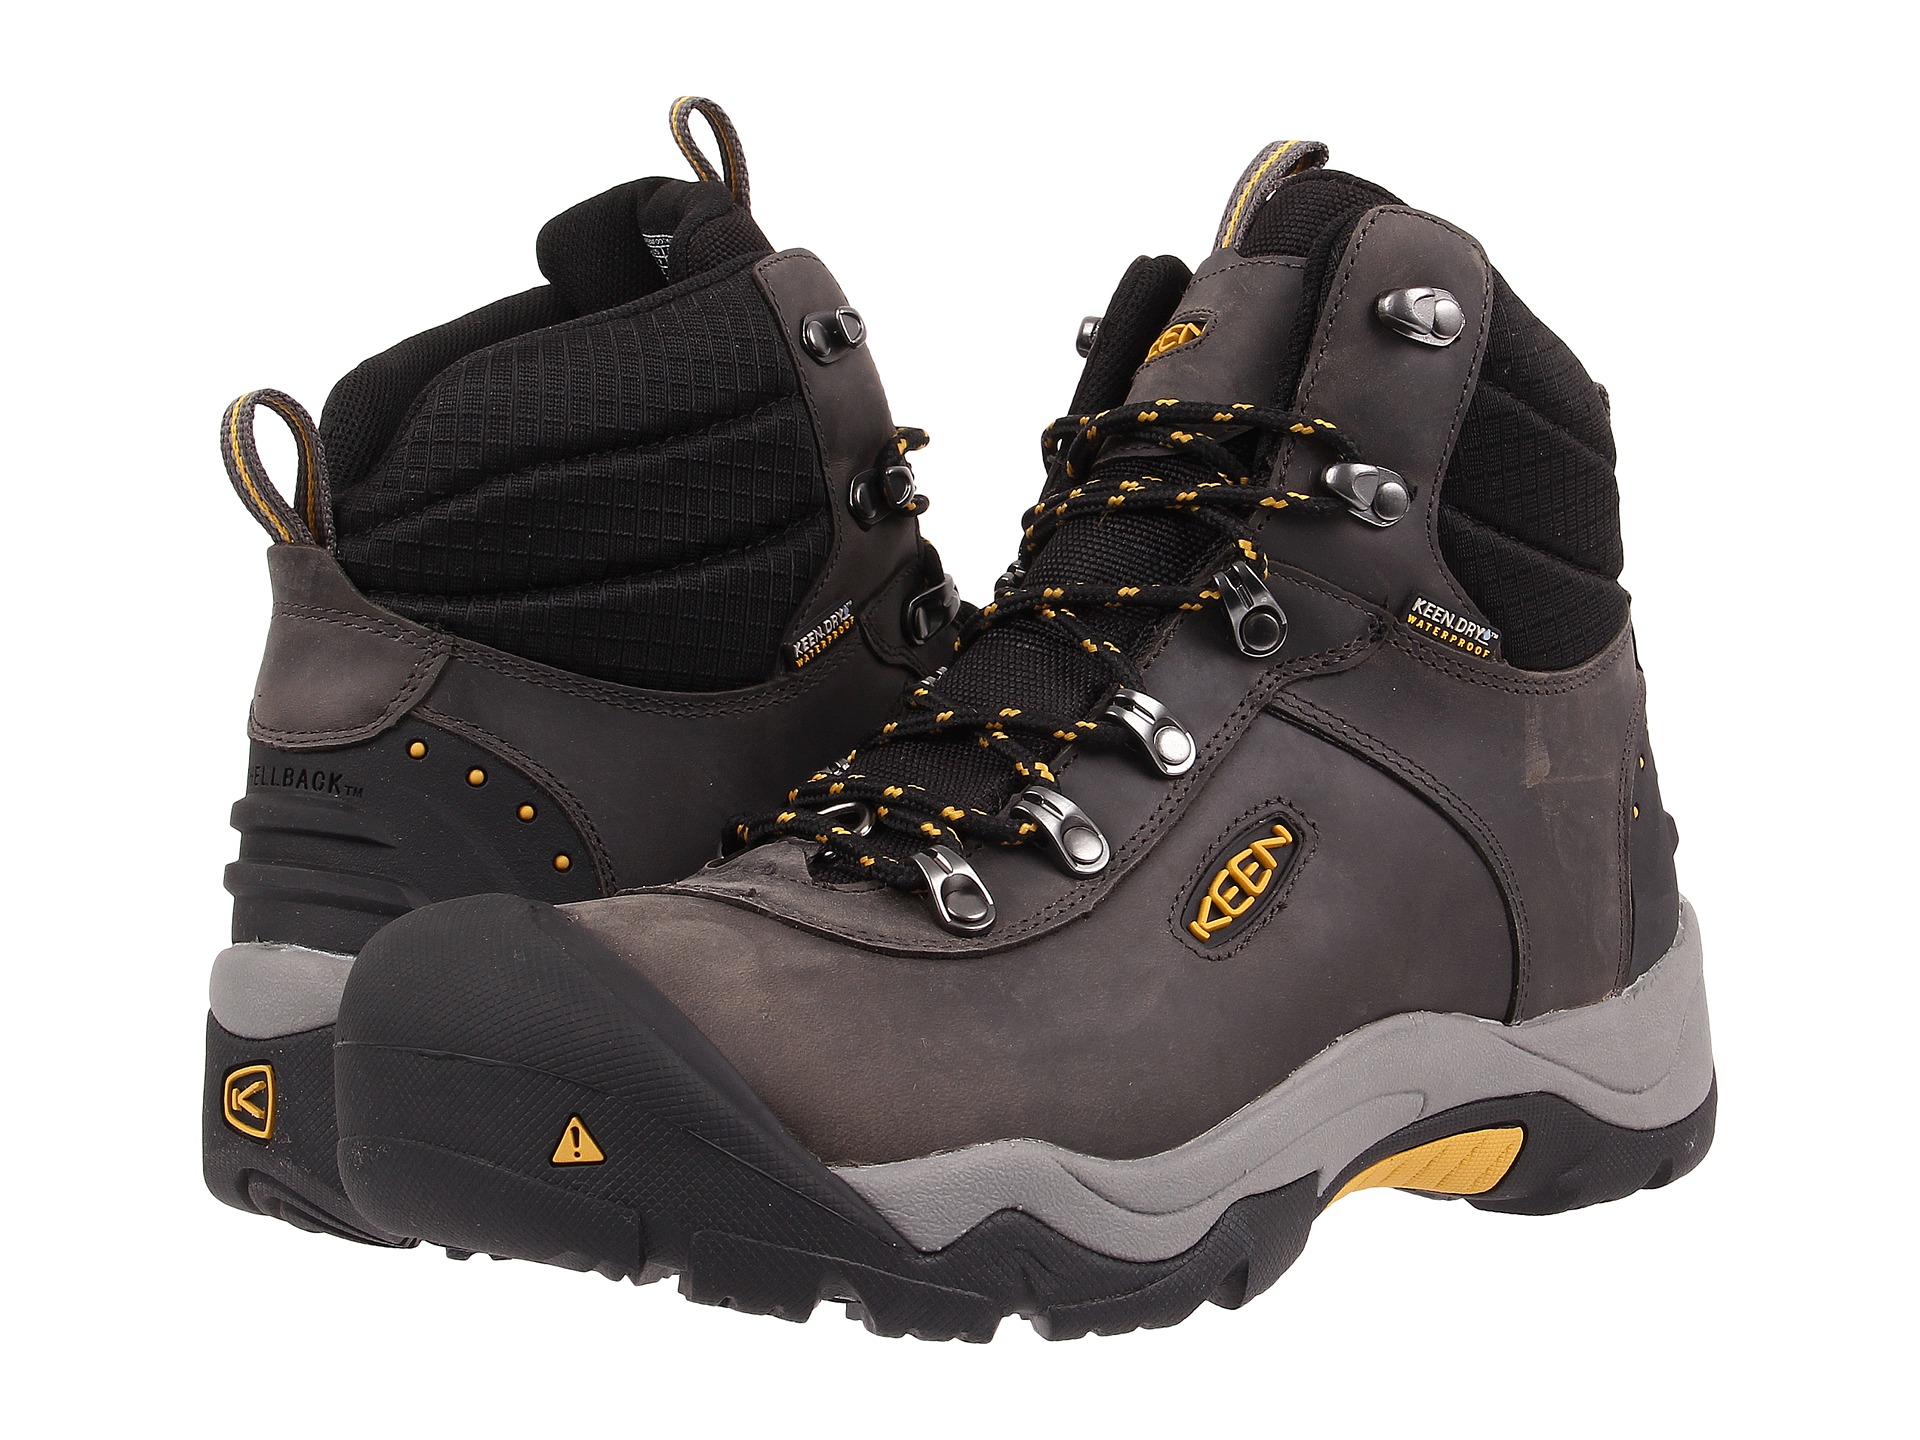 Keen Womens Shoes Zappos